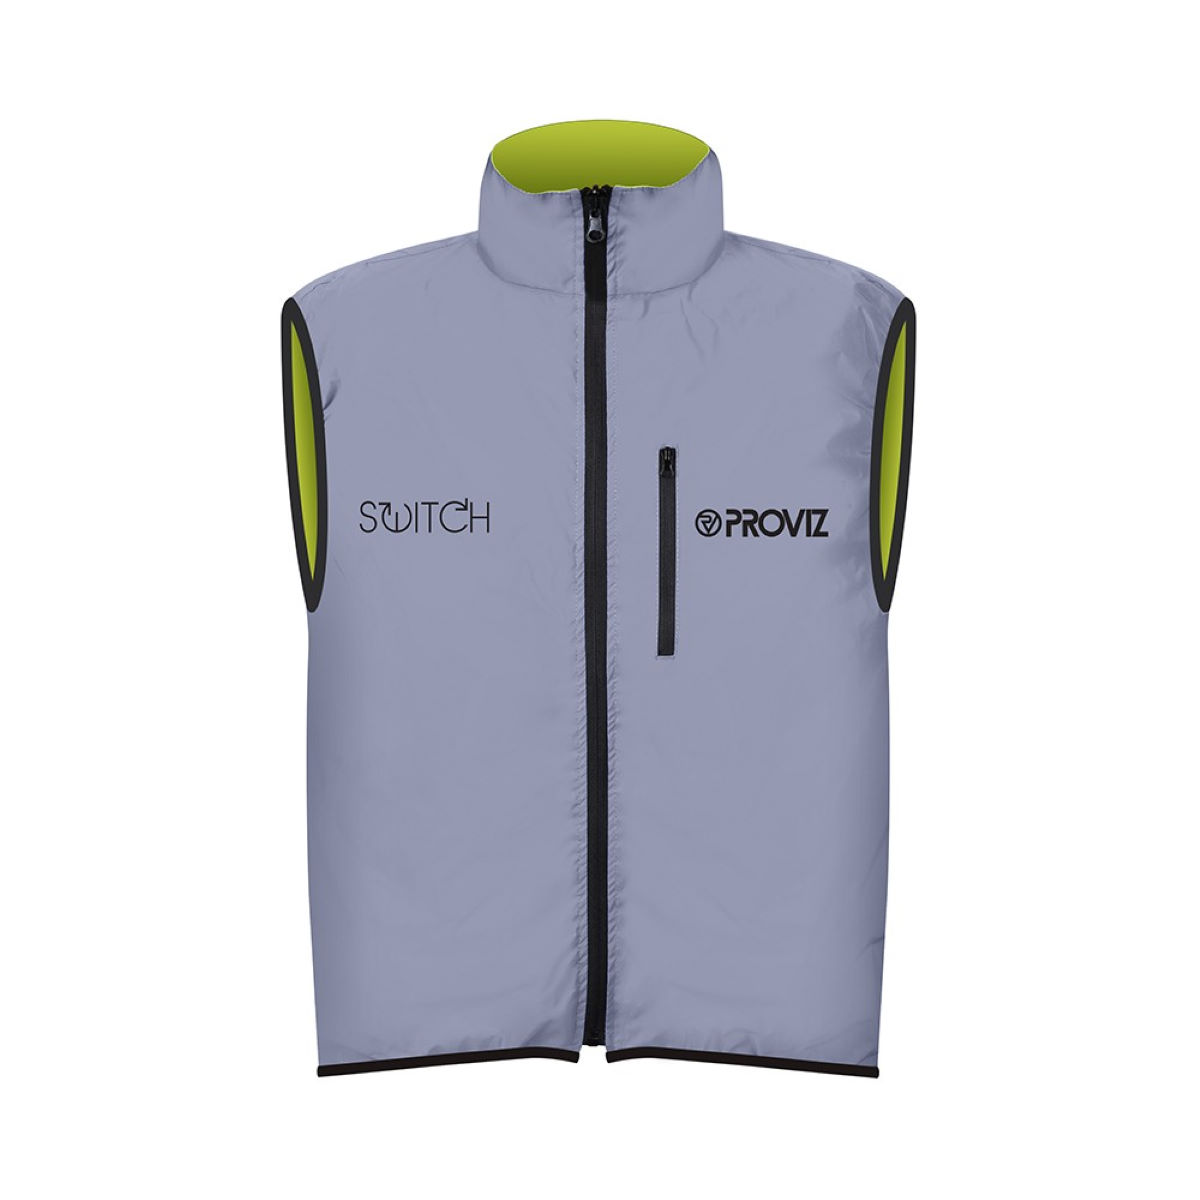 Gilet Proviz Switch (sans manches) - Large Reflective/Yellow